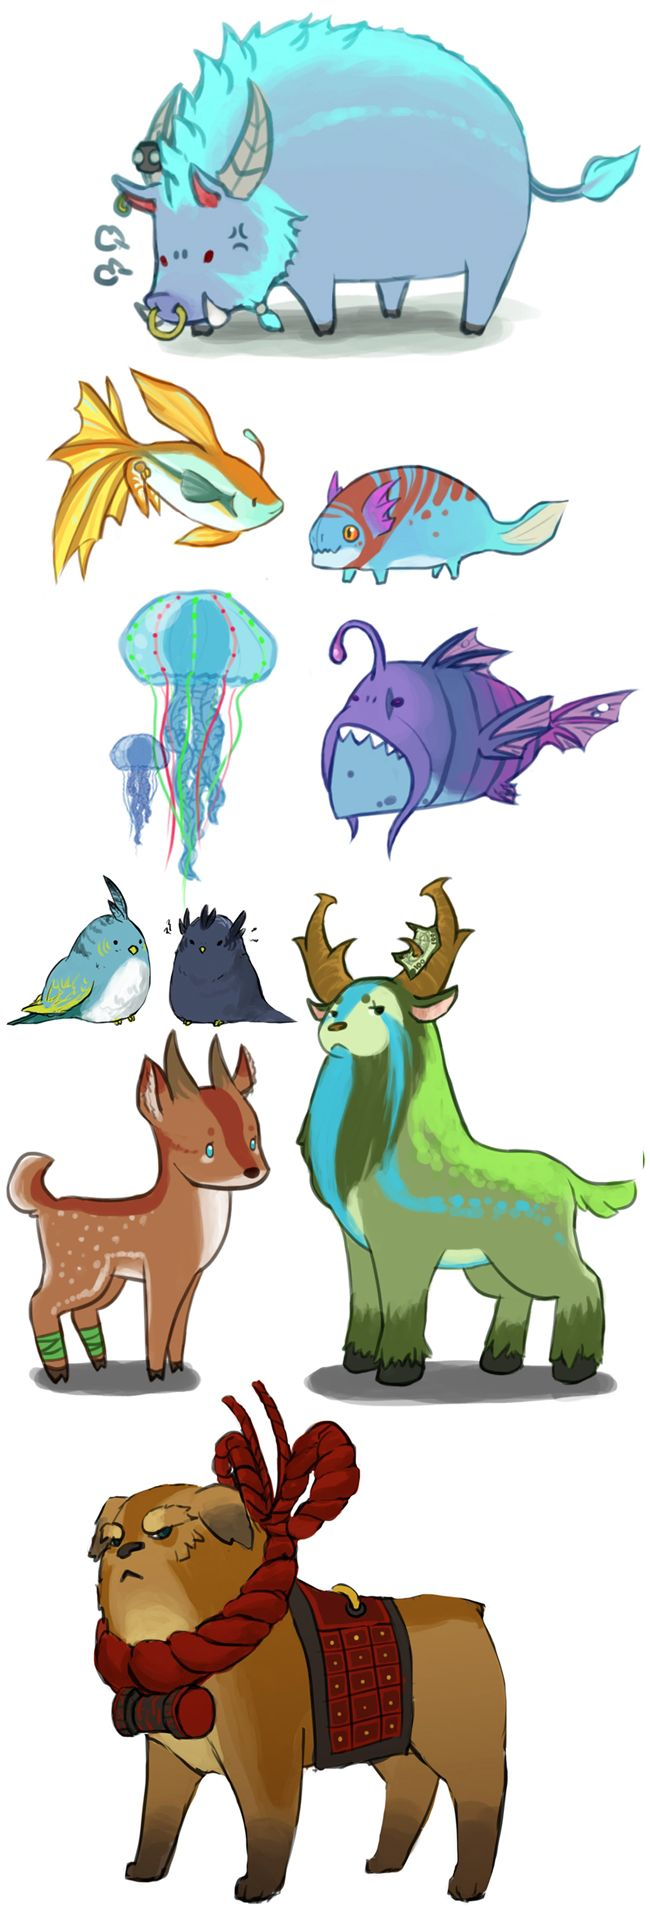 #Dota2 so cute! lol http://d2img.ru/img/13/10/1002709.png